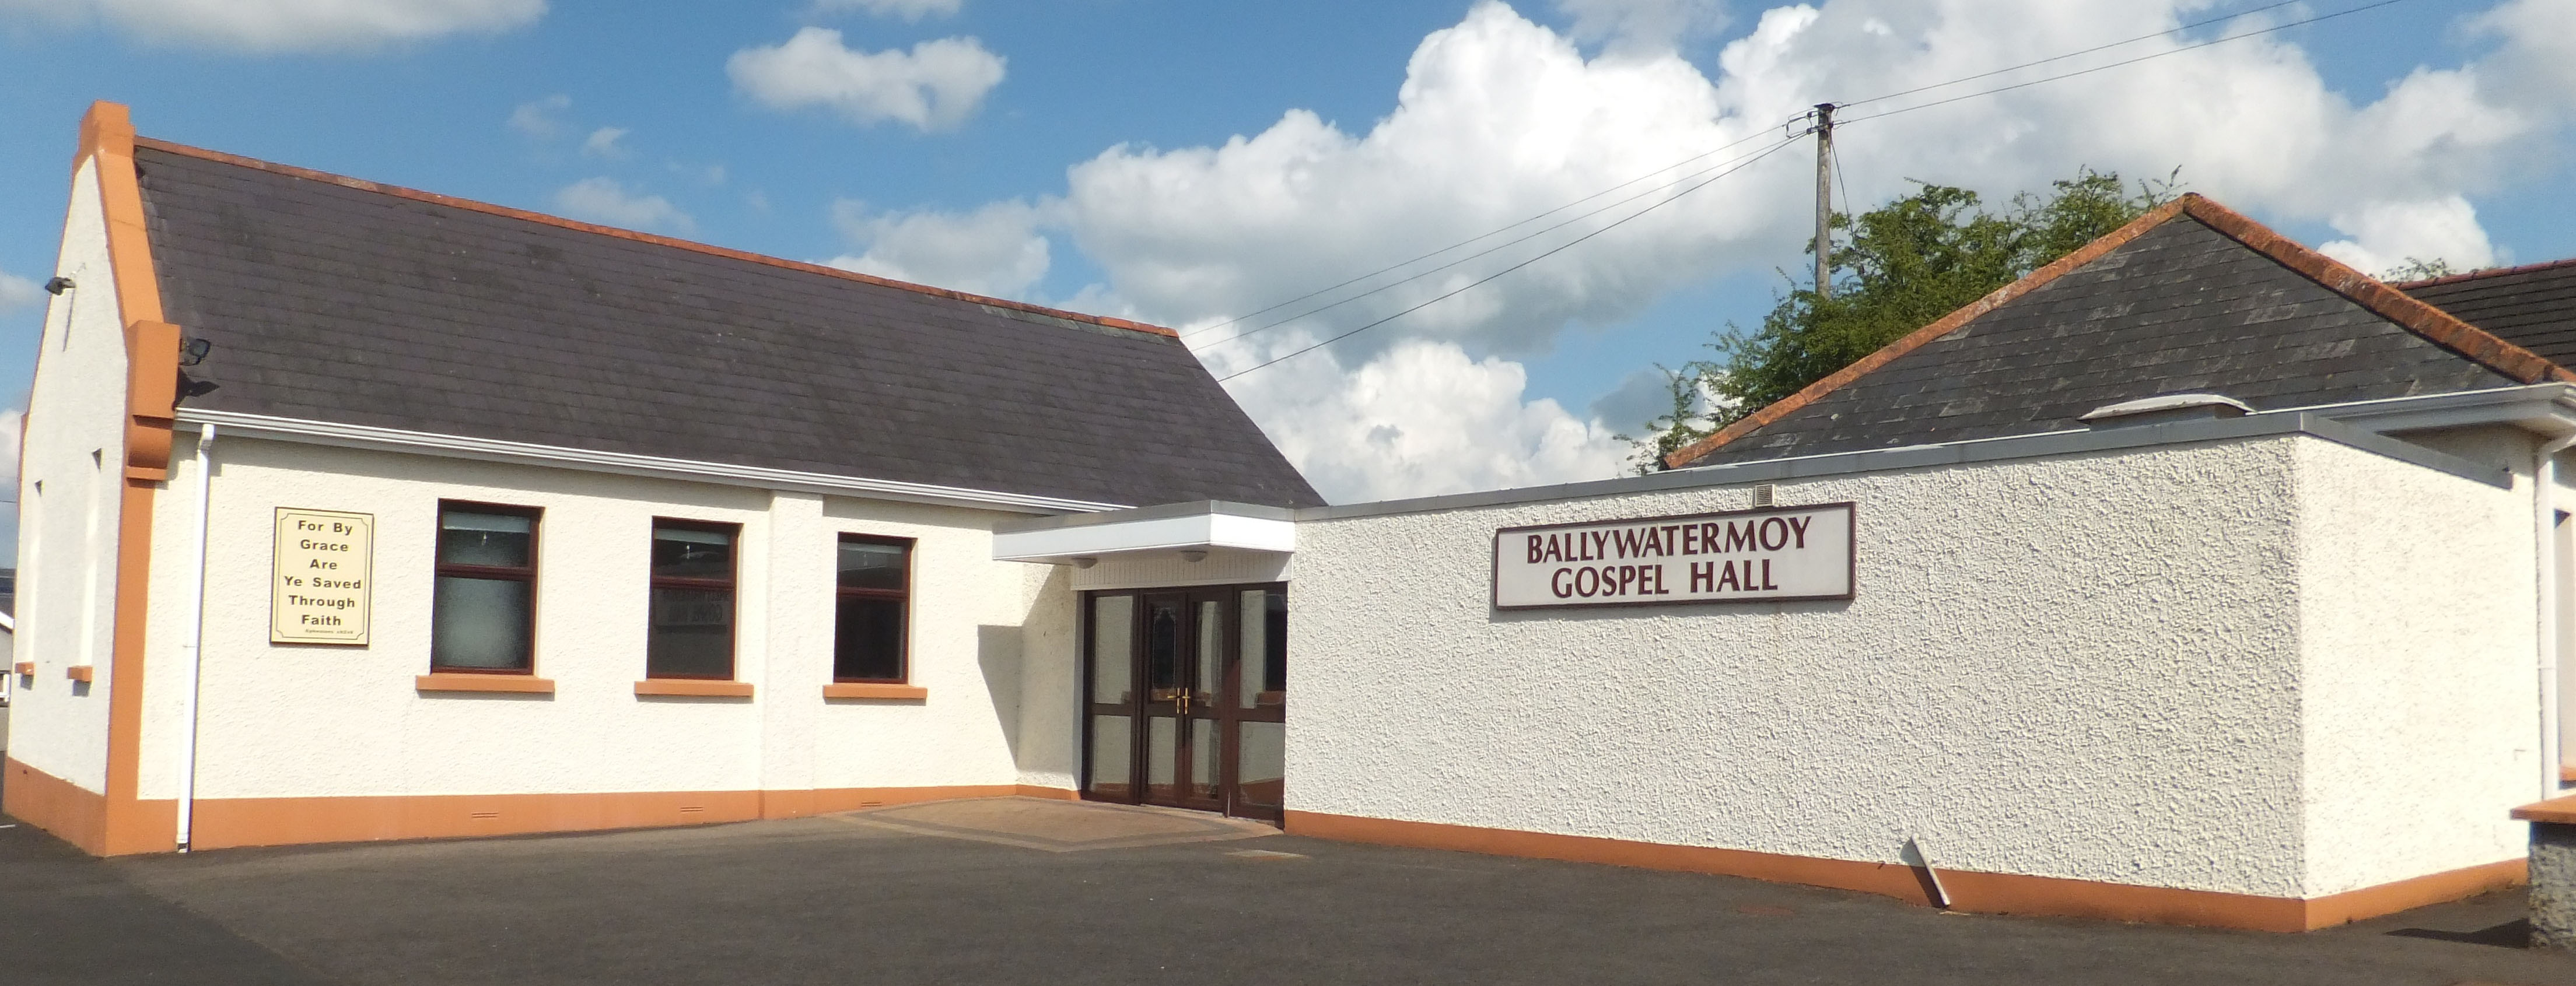 ballywatermoy-gospel-hall